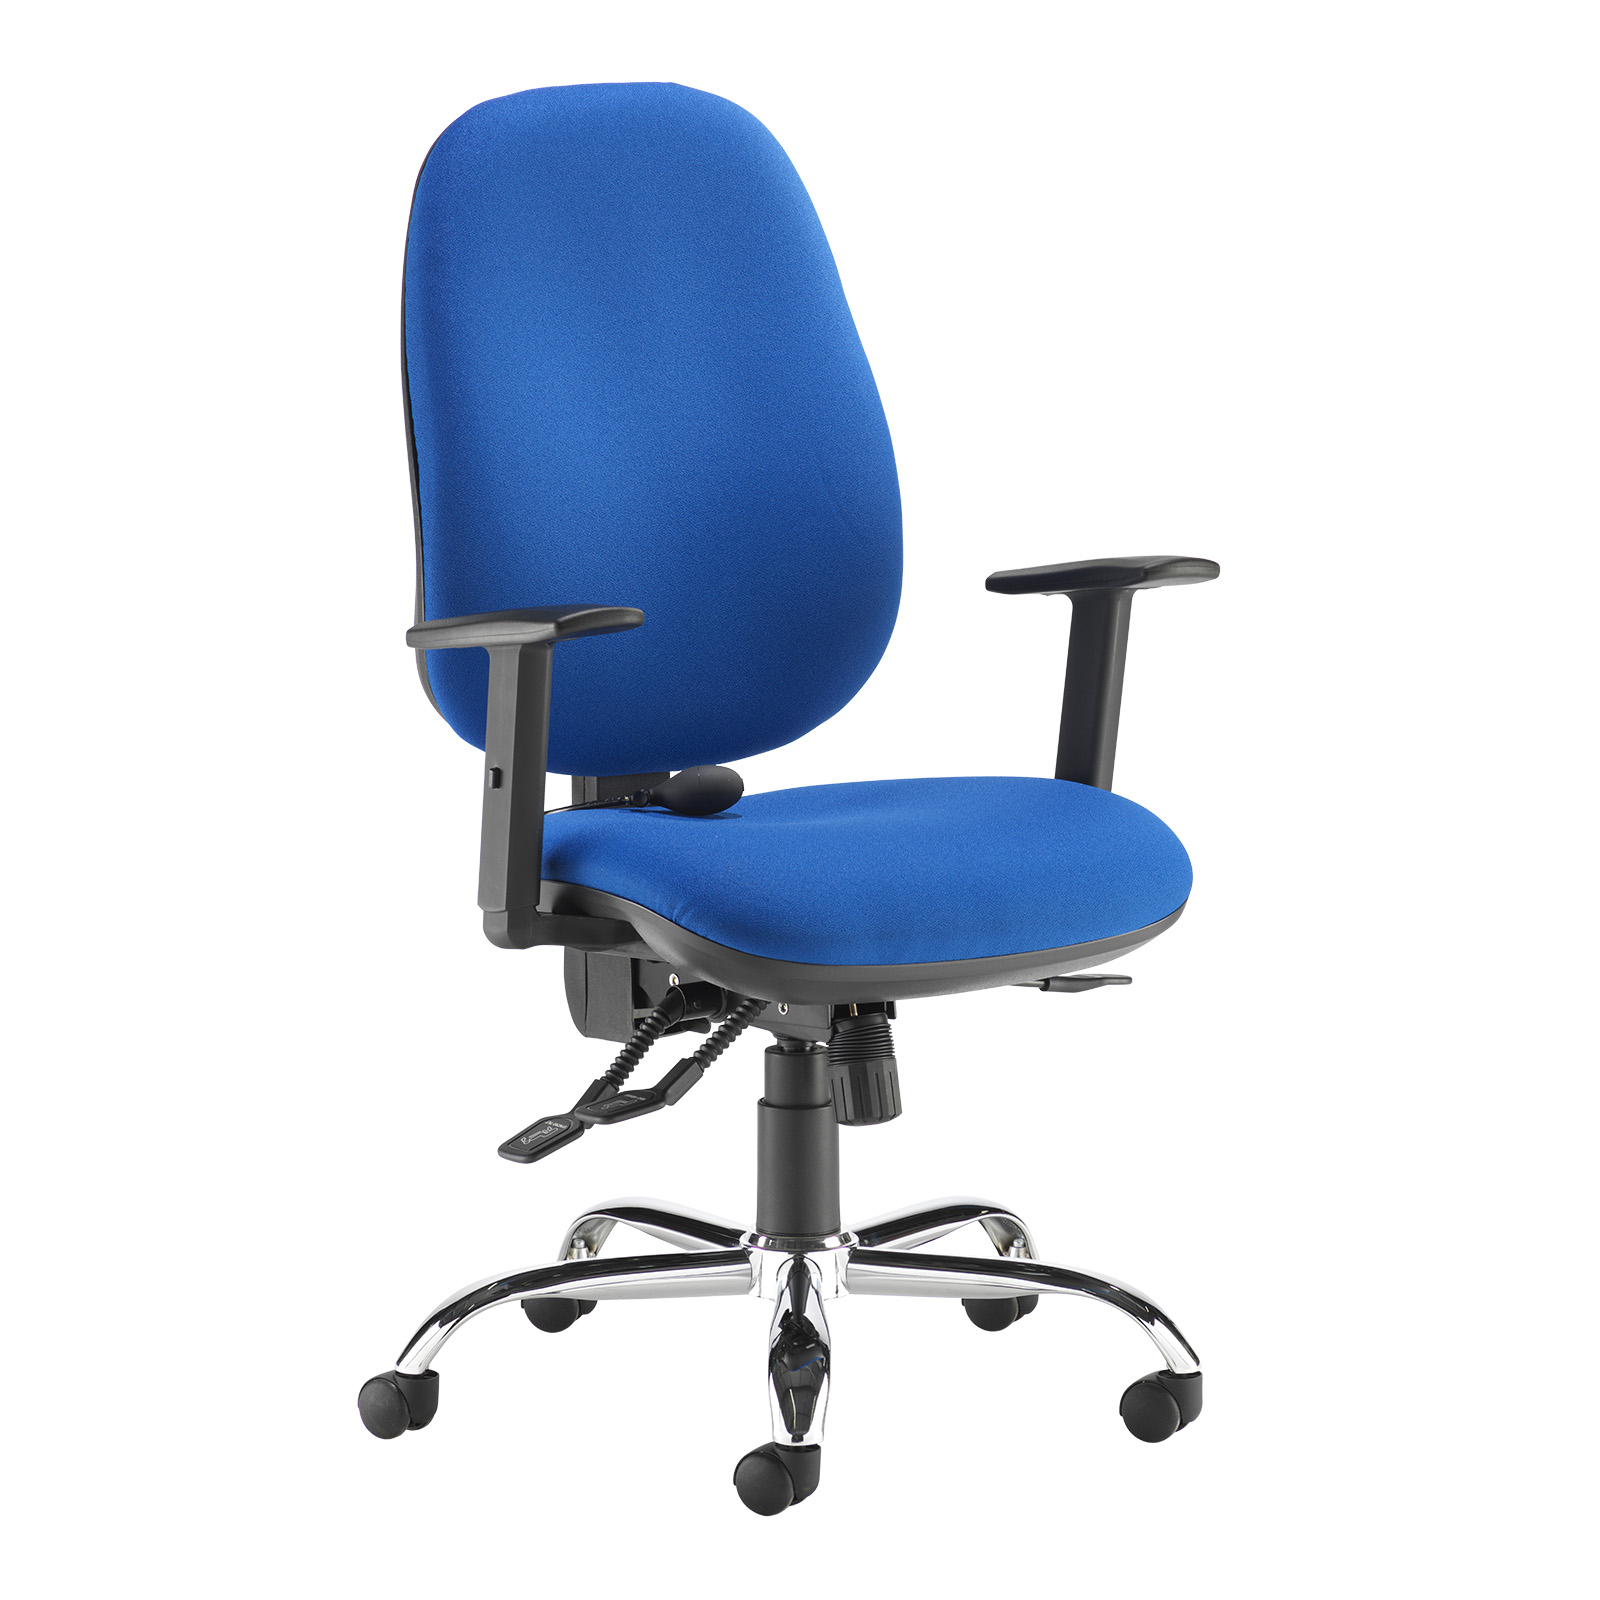 Desk Chairs Jota ergo 24hr ergonomic asynchro task chair - blue